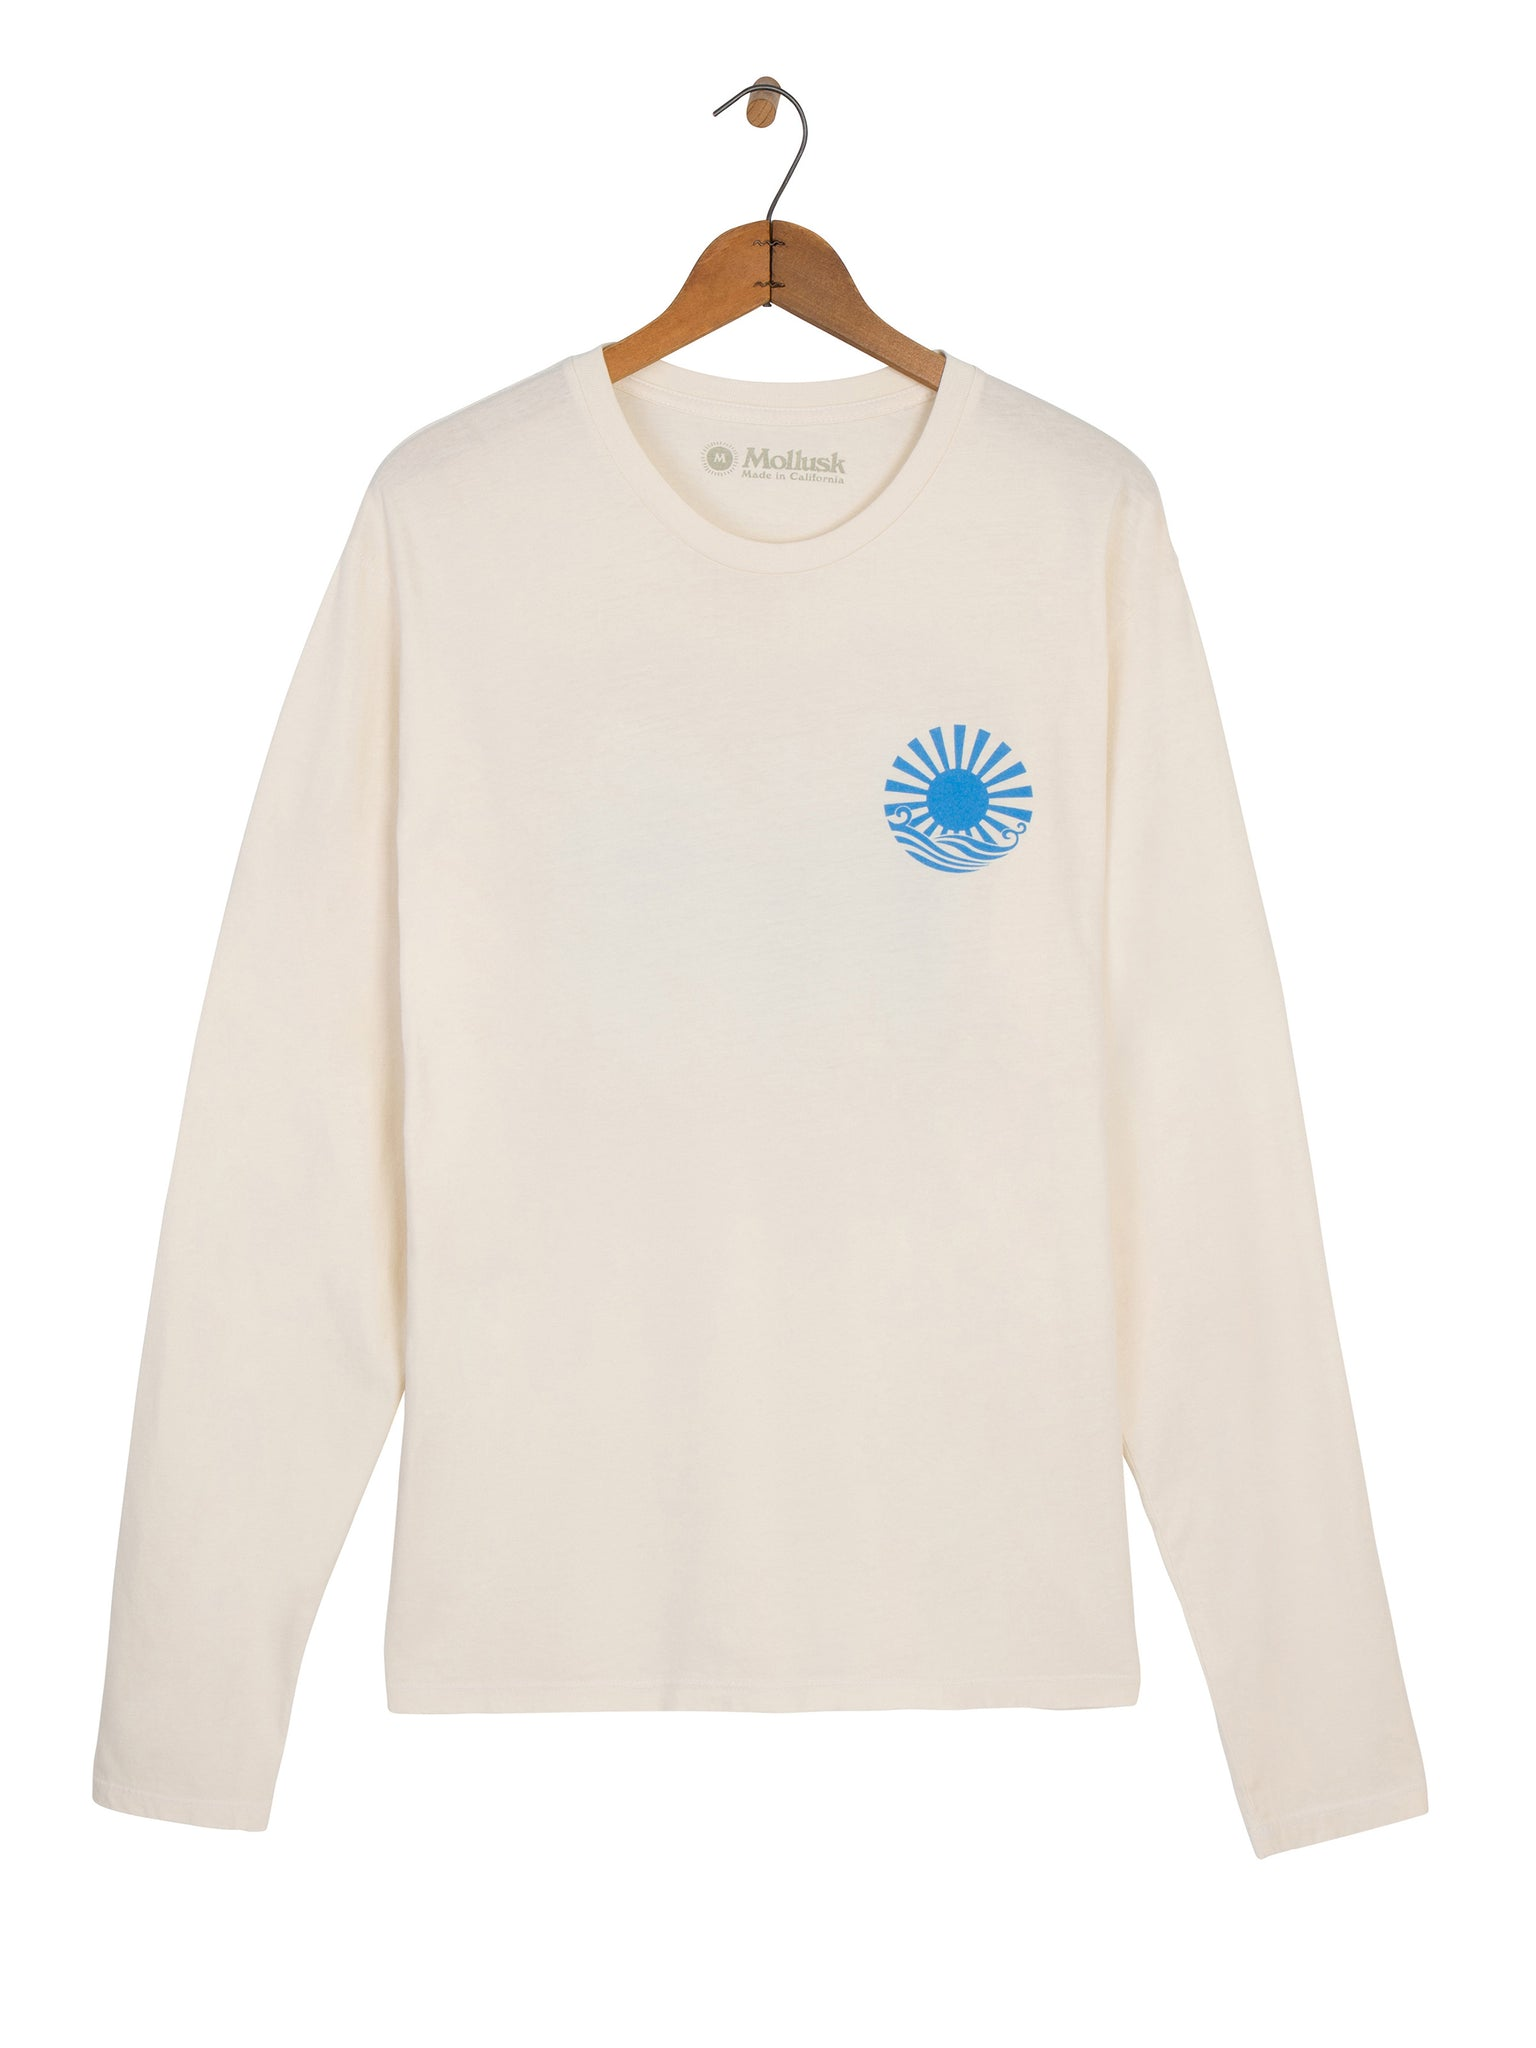 Kanpai Long Sleeve